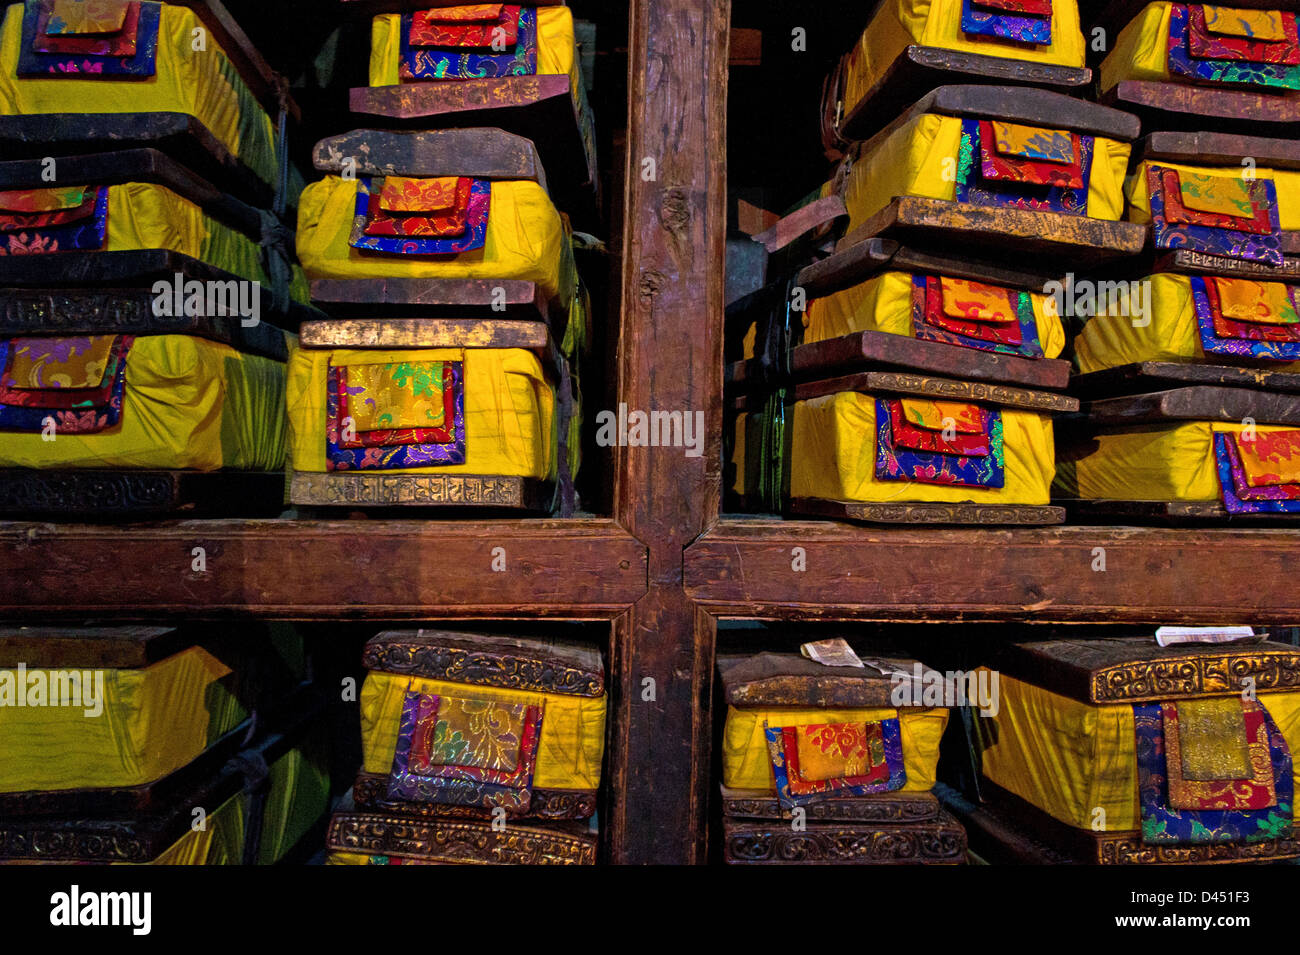 Shelves with old scriptures in library of Pelchor Chöde monastery, Gyantse, Tibet - Stock Image